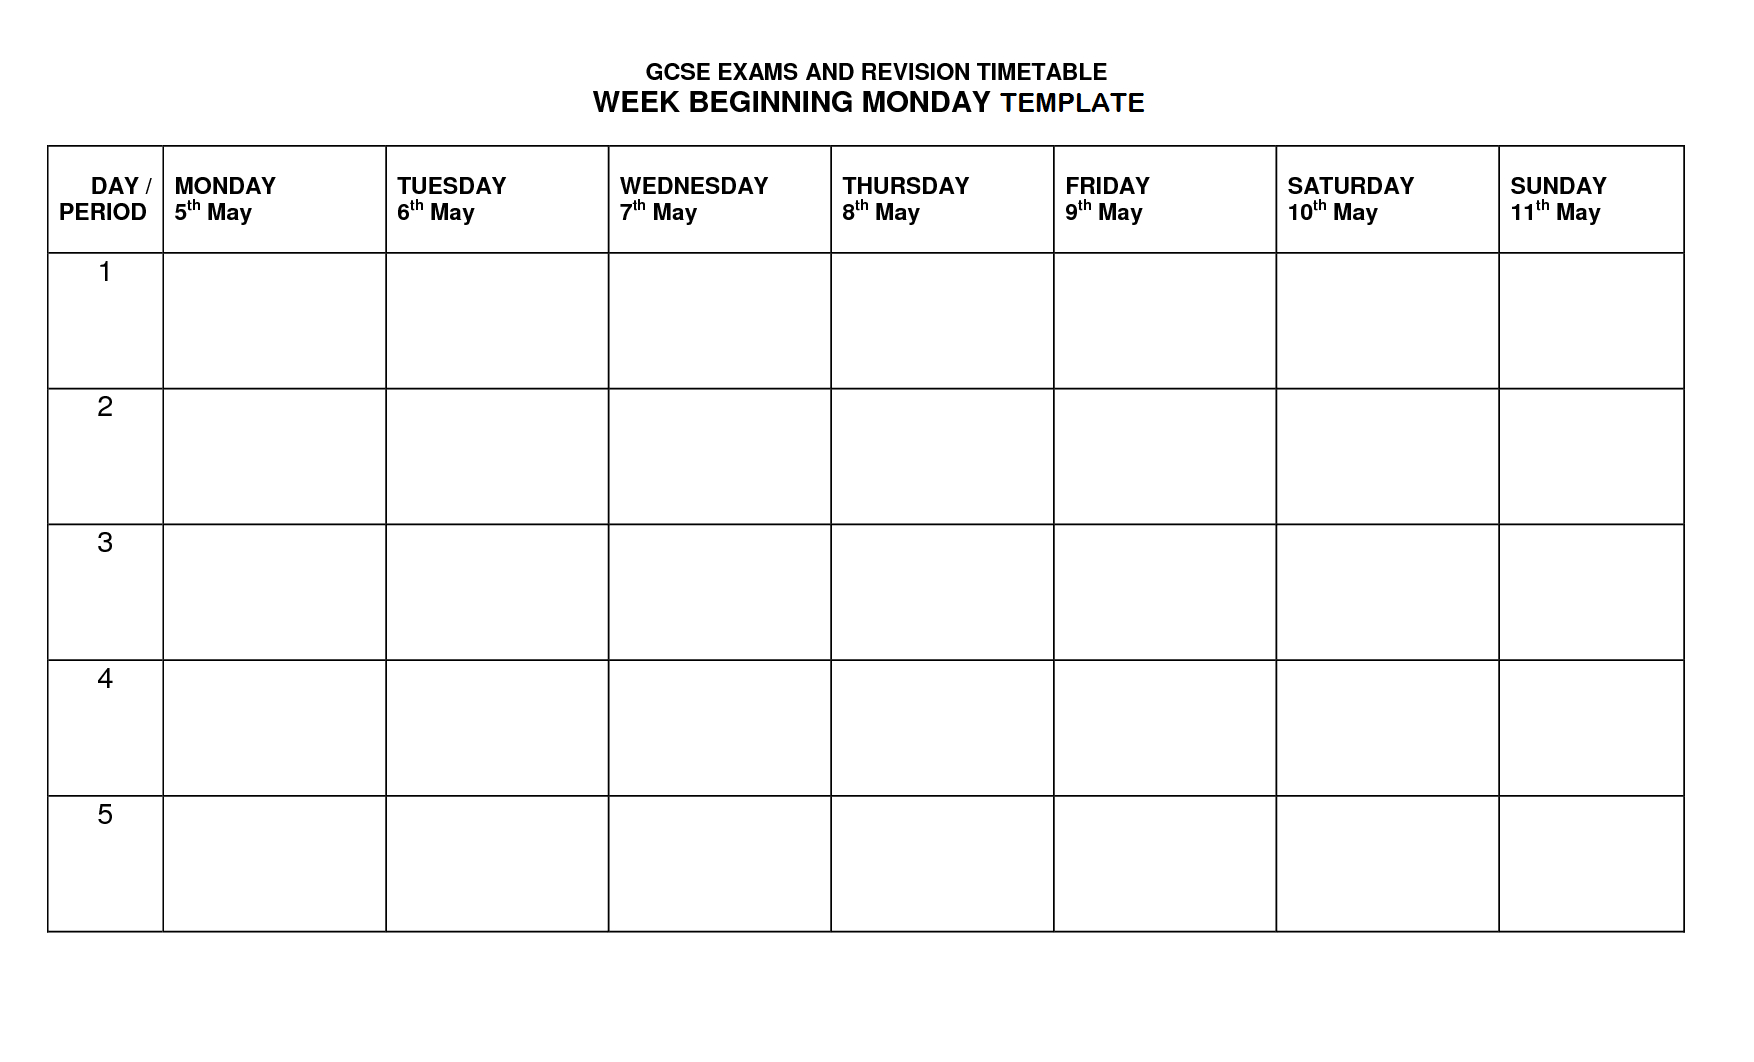 Timetable Template | Timetable Templates | Timetable Template throughout Free Printable Template For Day Of The Week Schedule